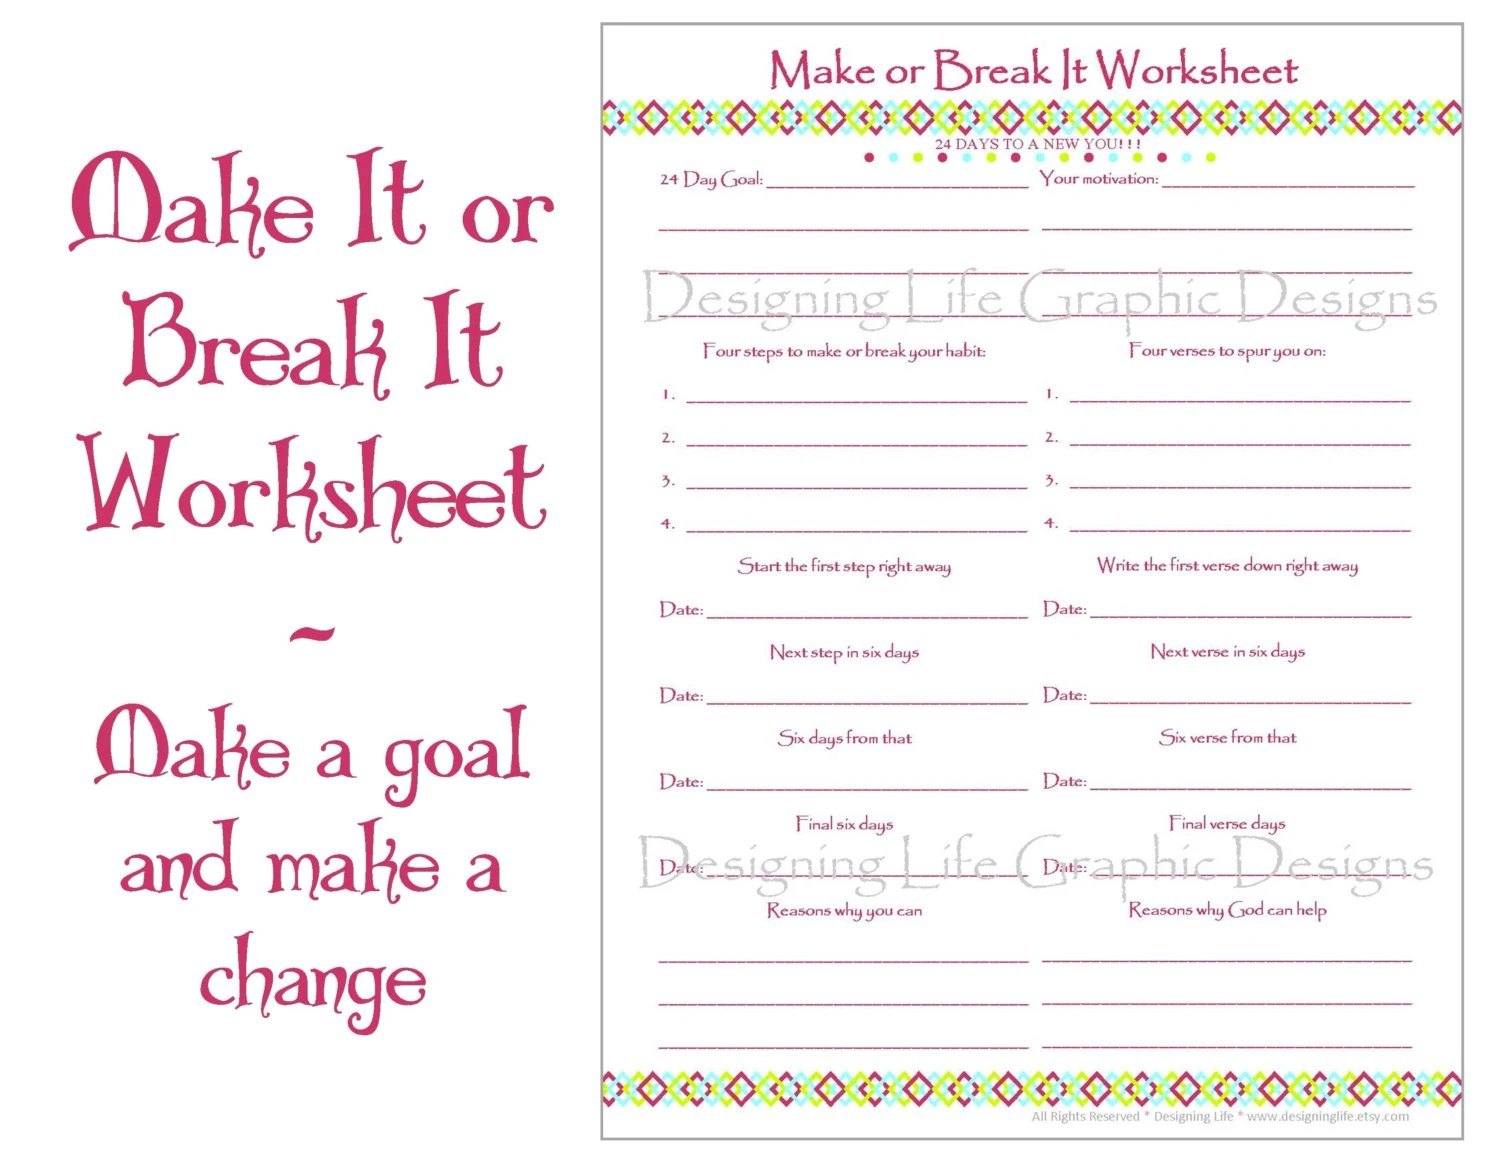 Make It Or Break It Printable Worksheets 24 Days Of Habit